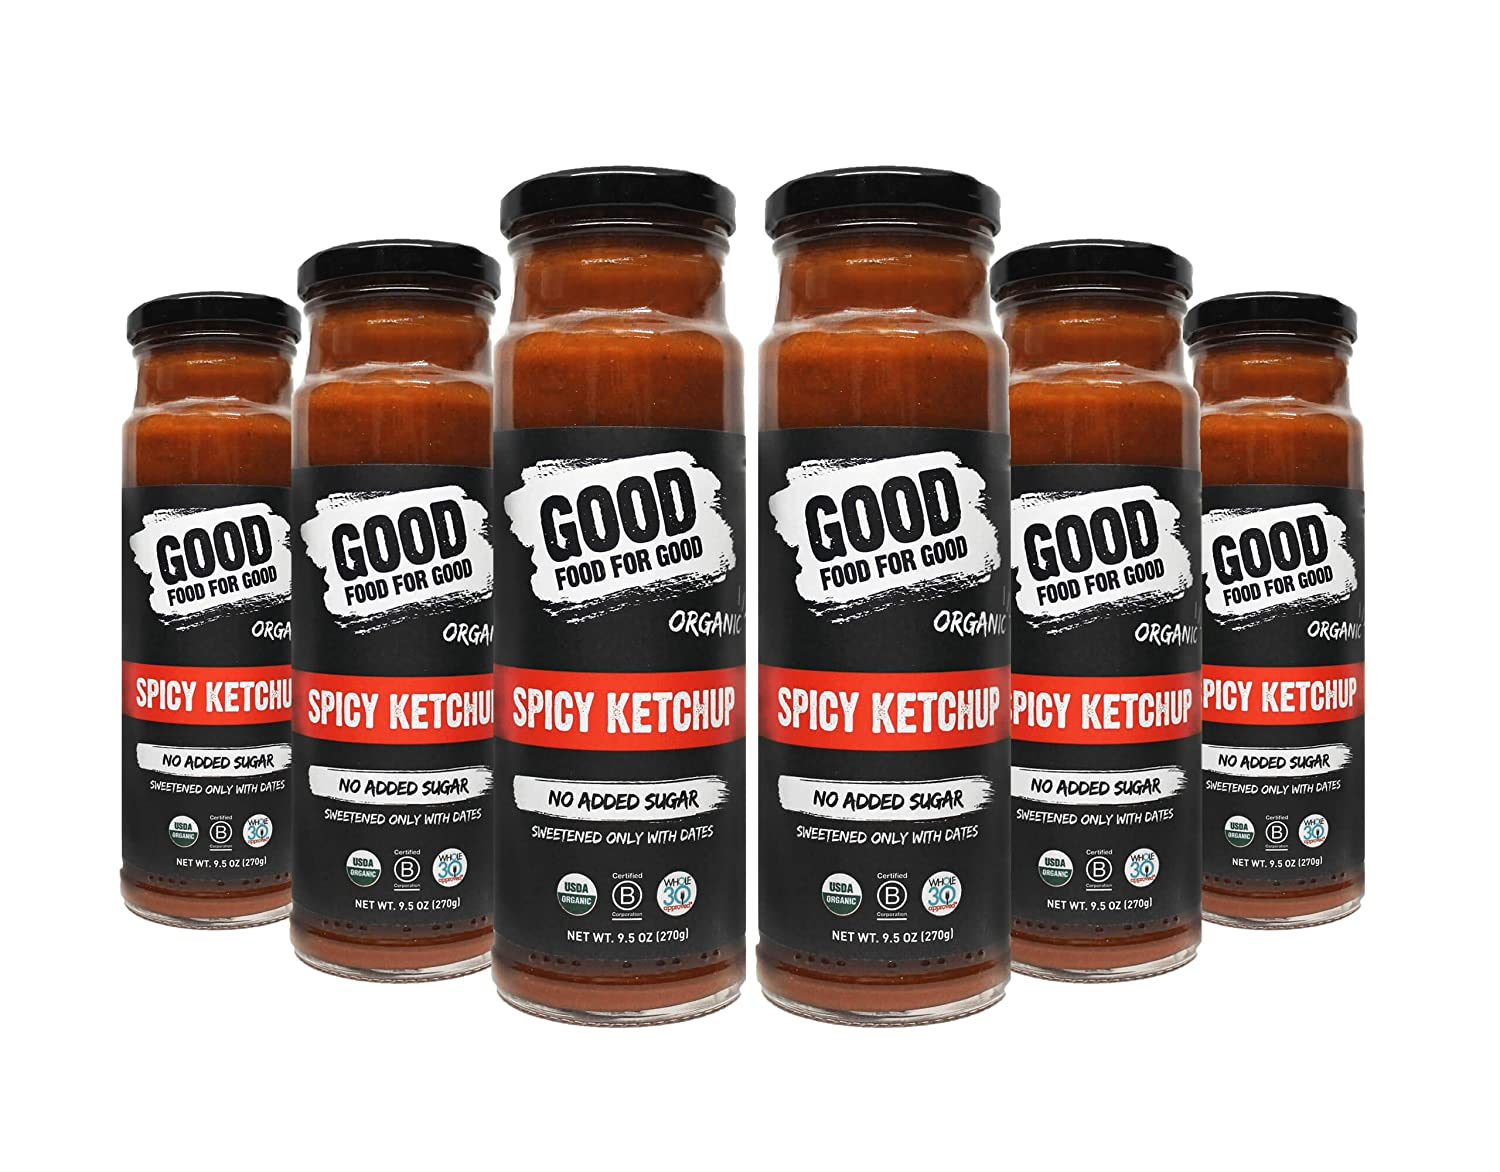 Good Food For Good Organic Spicy Ketchup, No Added Sugar - Whole30, Keto - Gluten-free, (9.5 Oz), 6-Pack